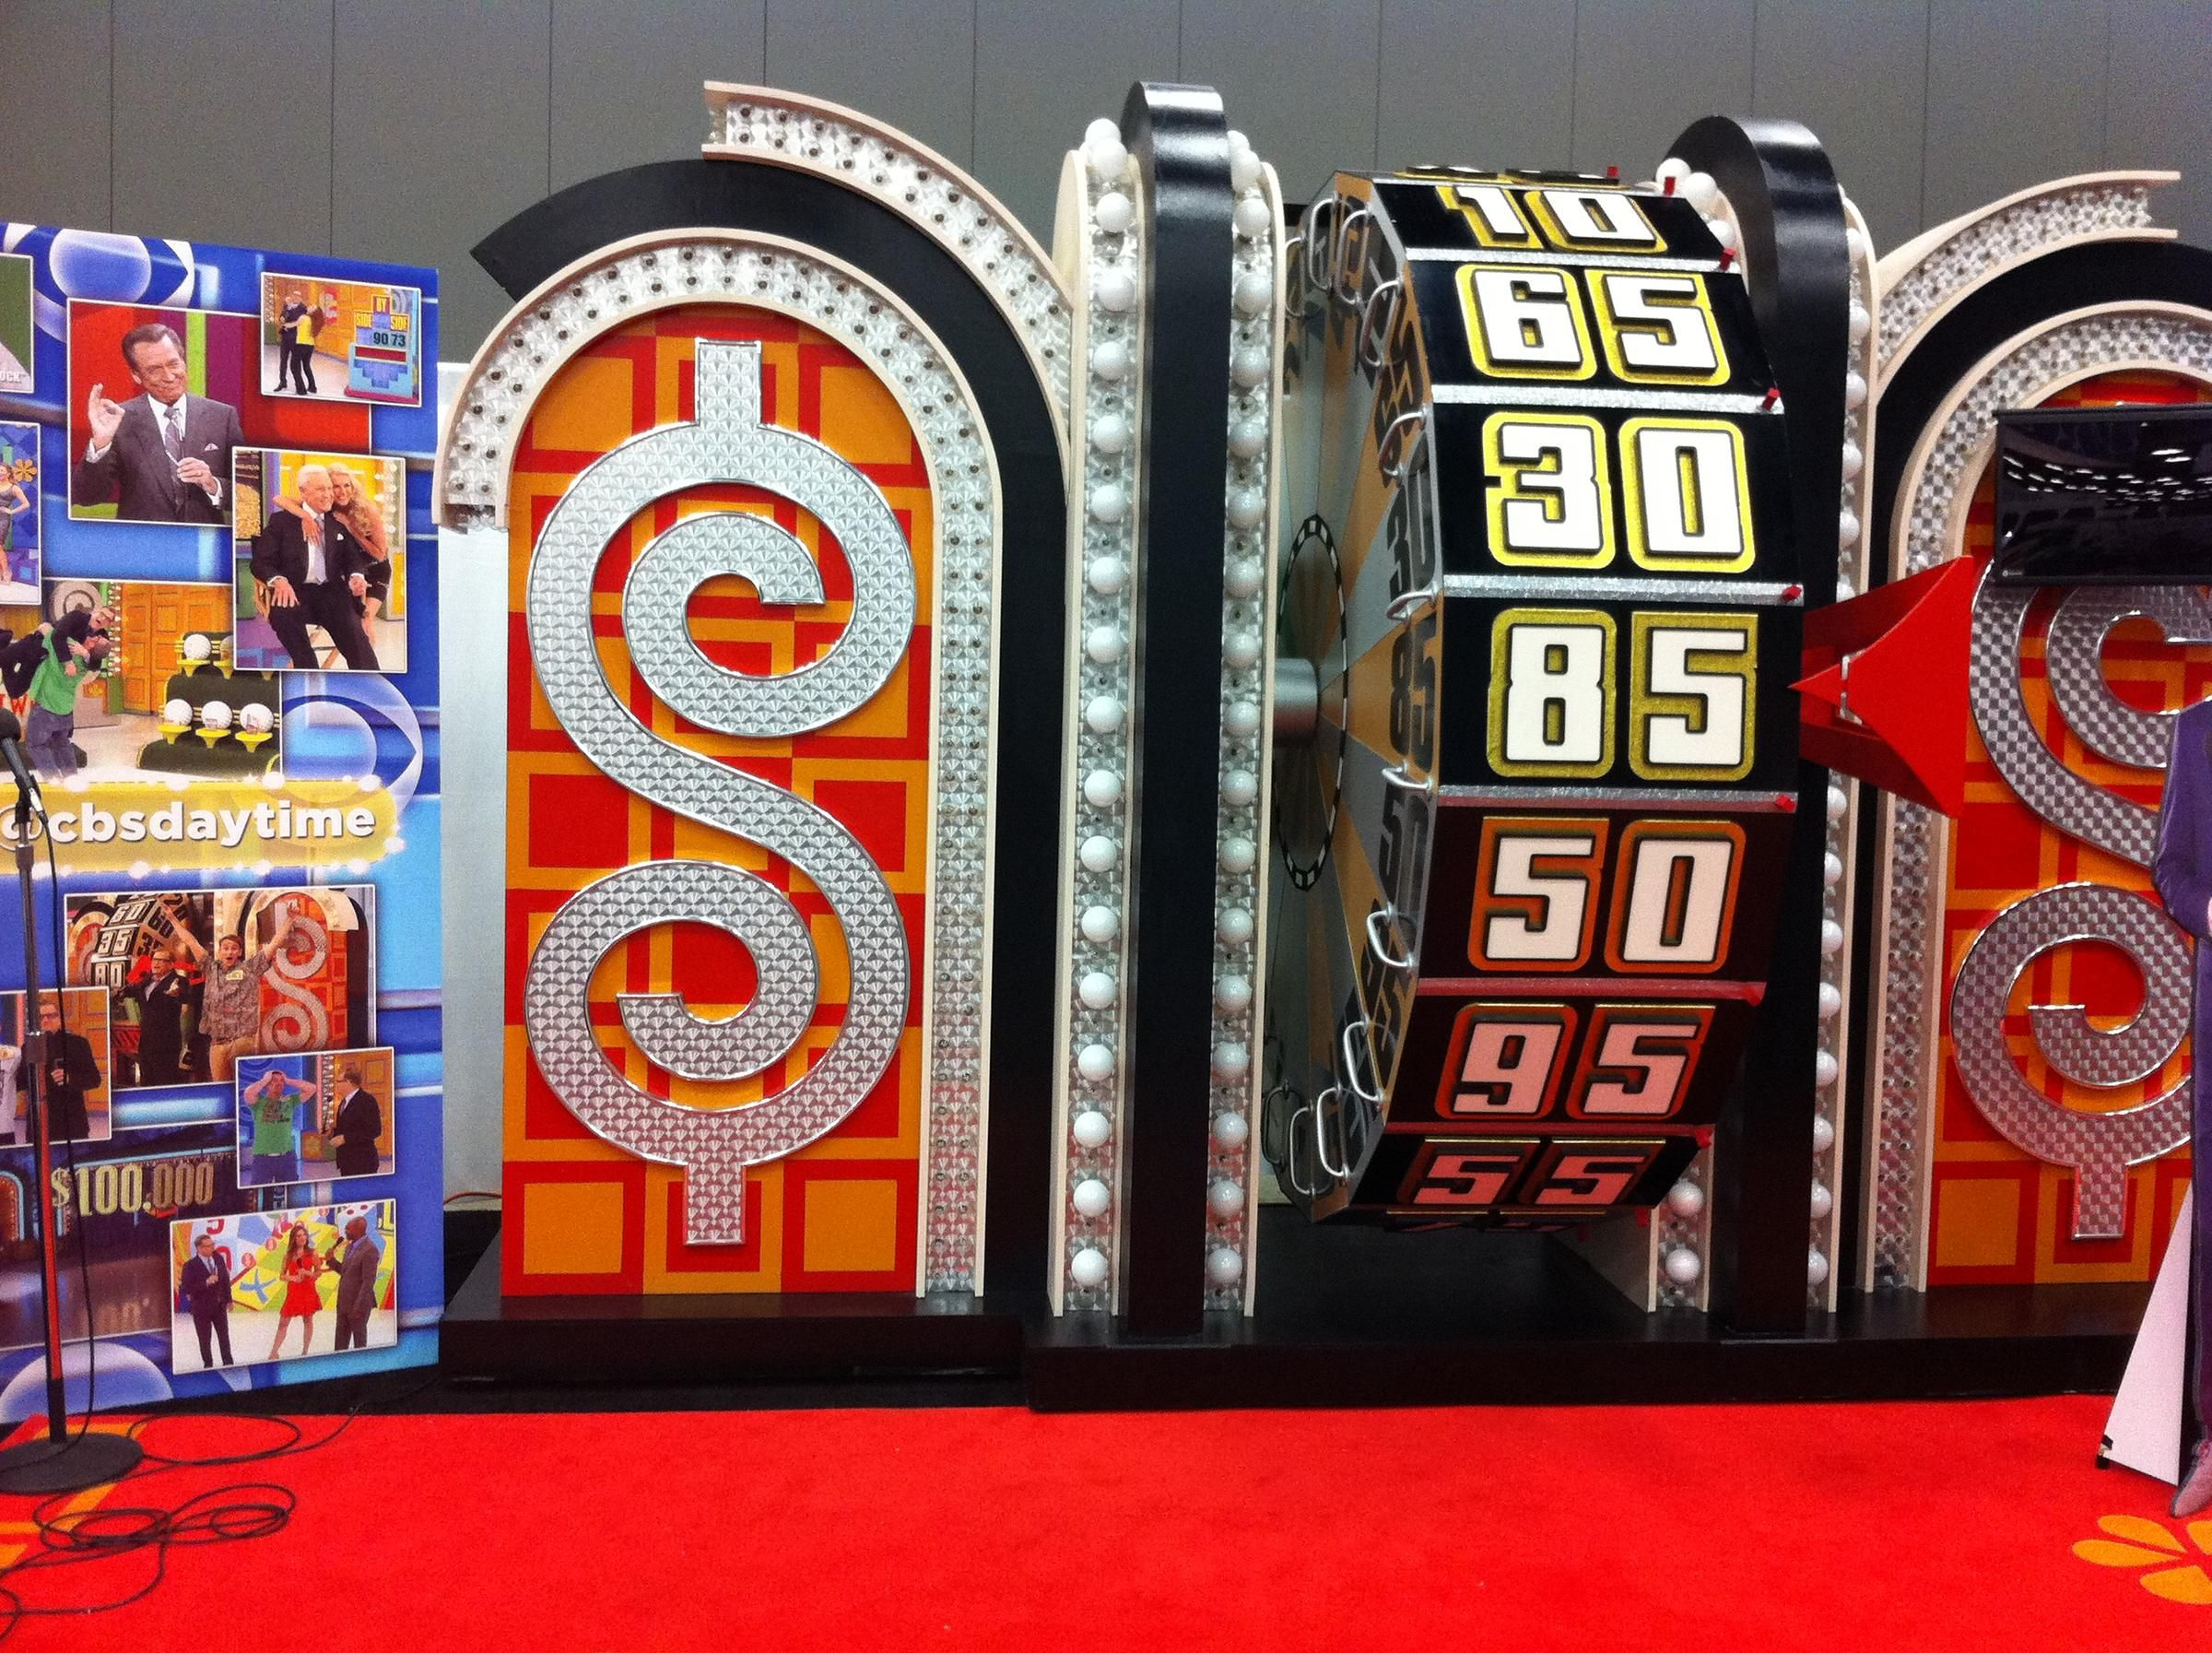 The Price is Right Wheel at SXSW Game show, Price is